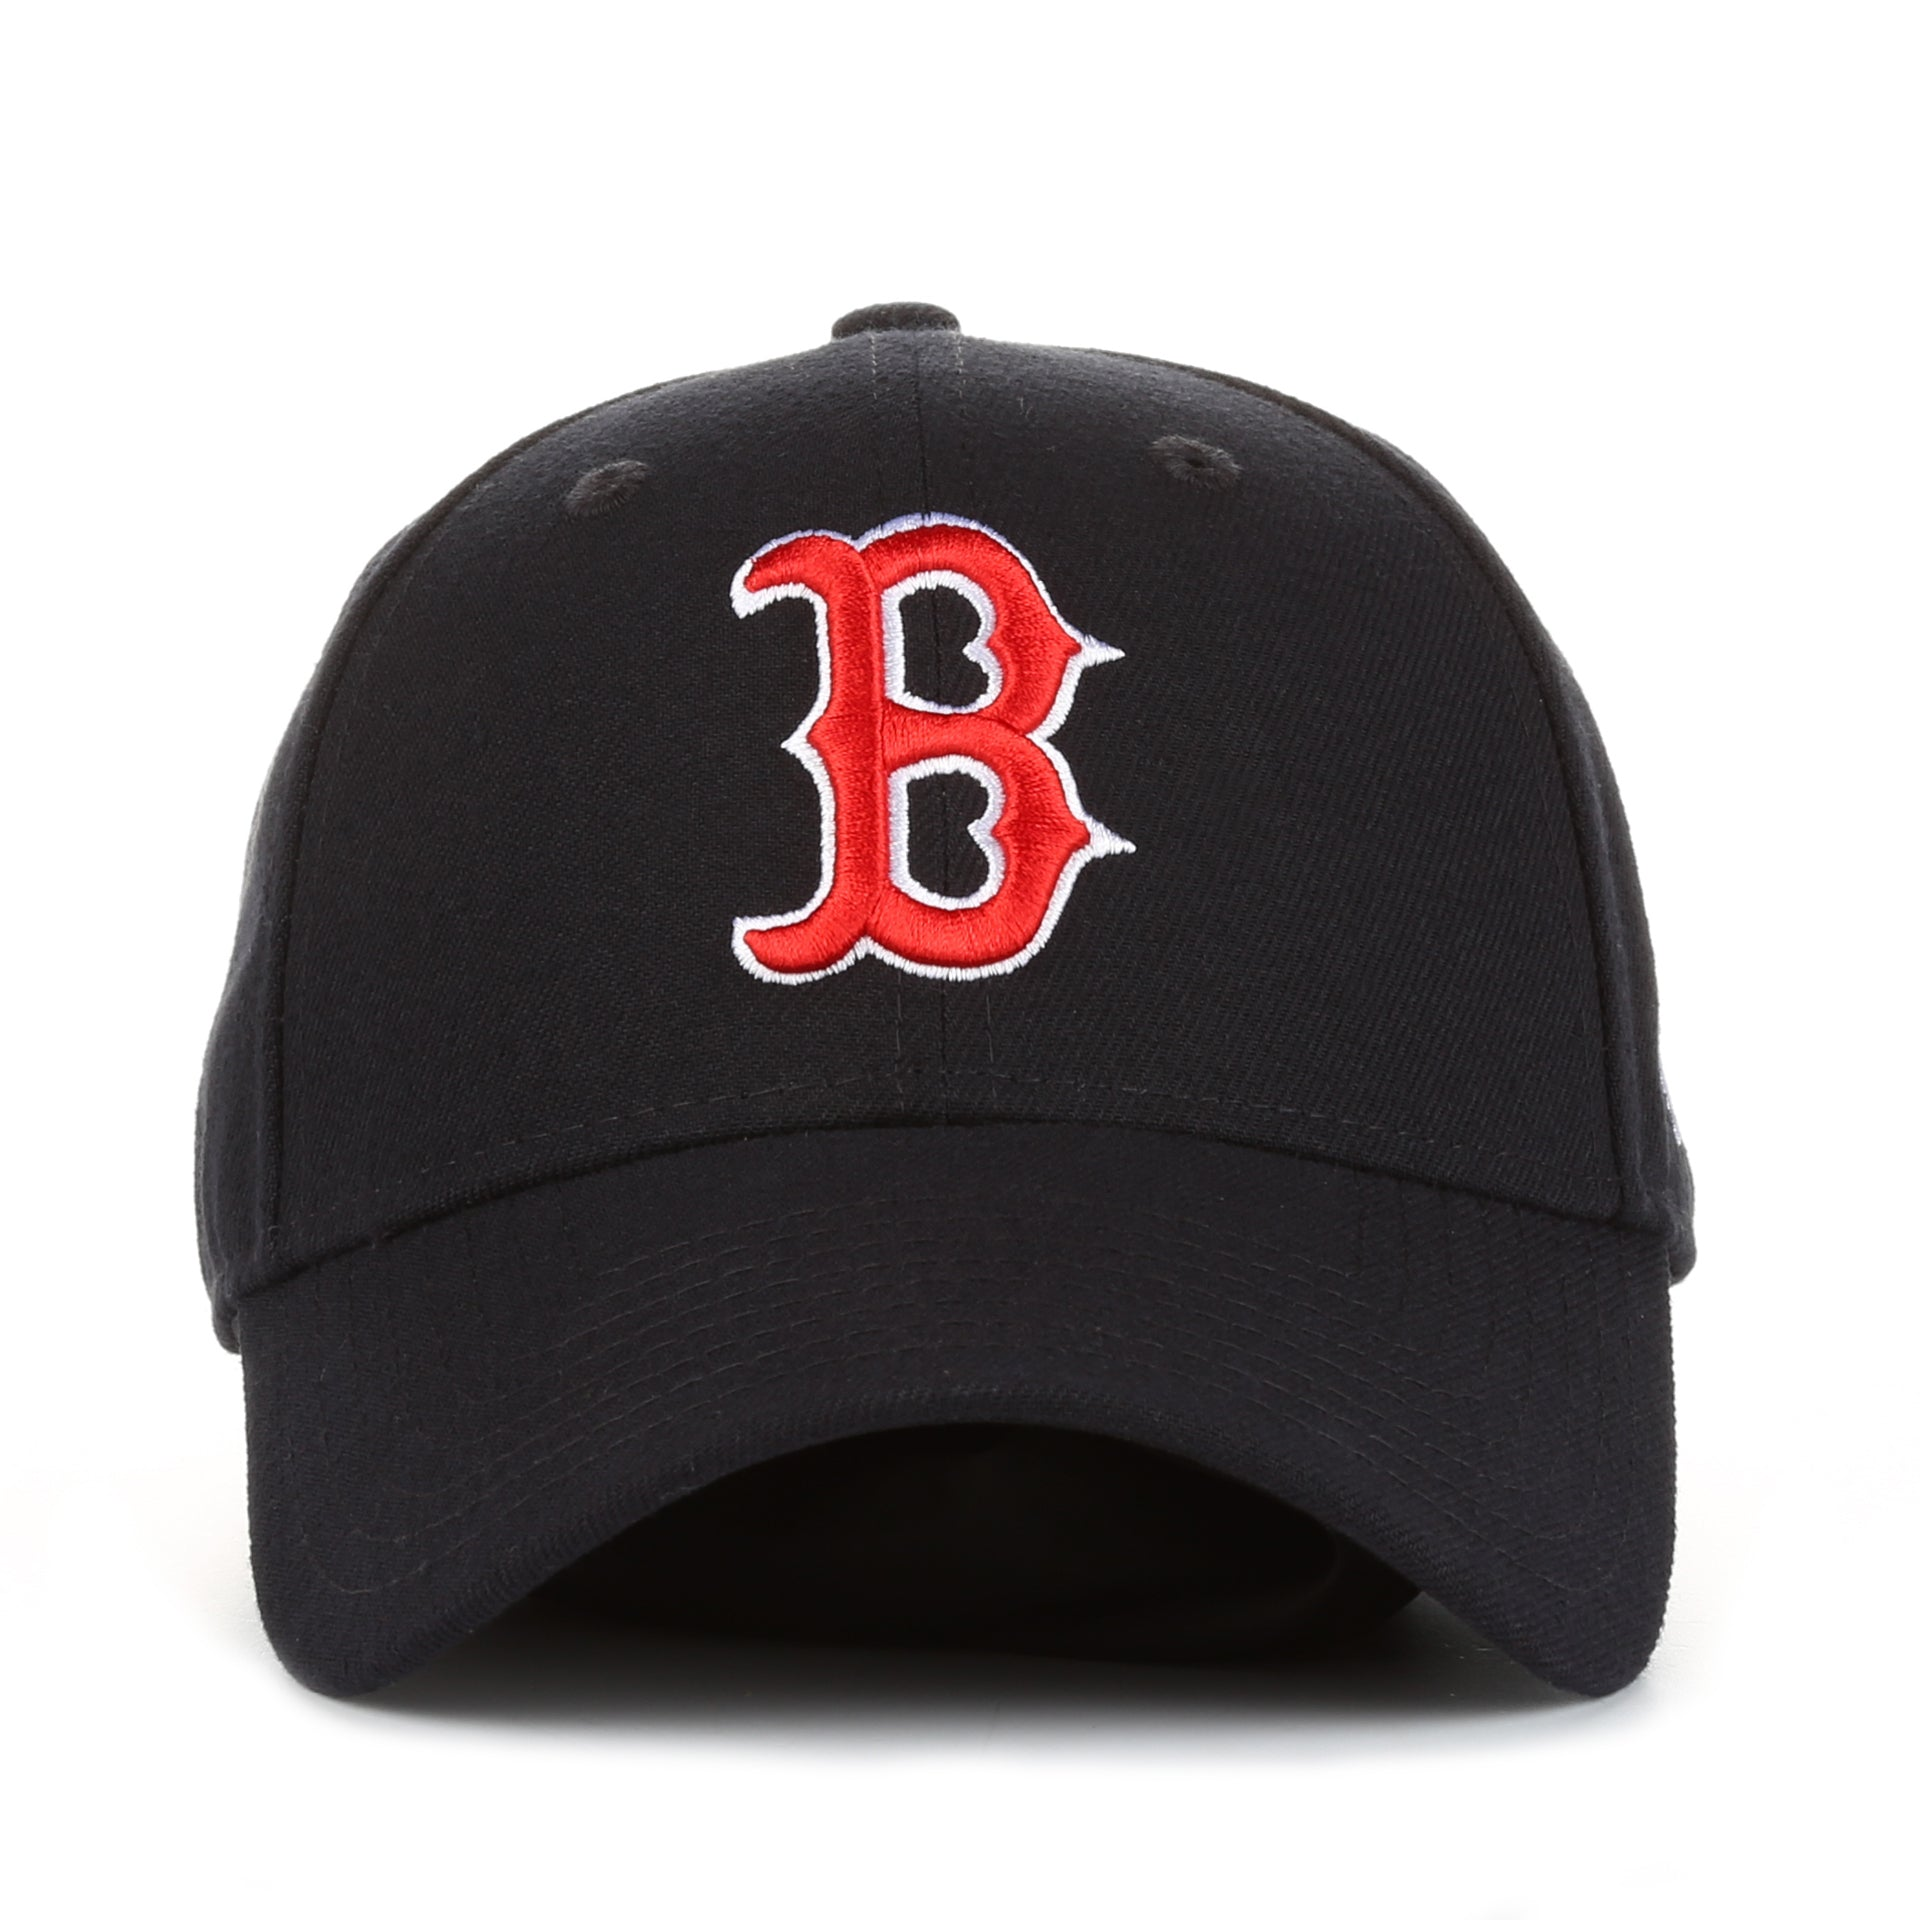 75ac1da3 New Era 9Forty The League Game Cap - Boston Red Sox/Navy - New Star